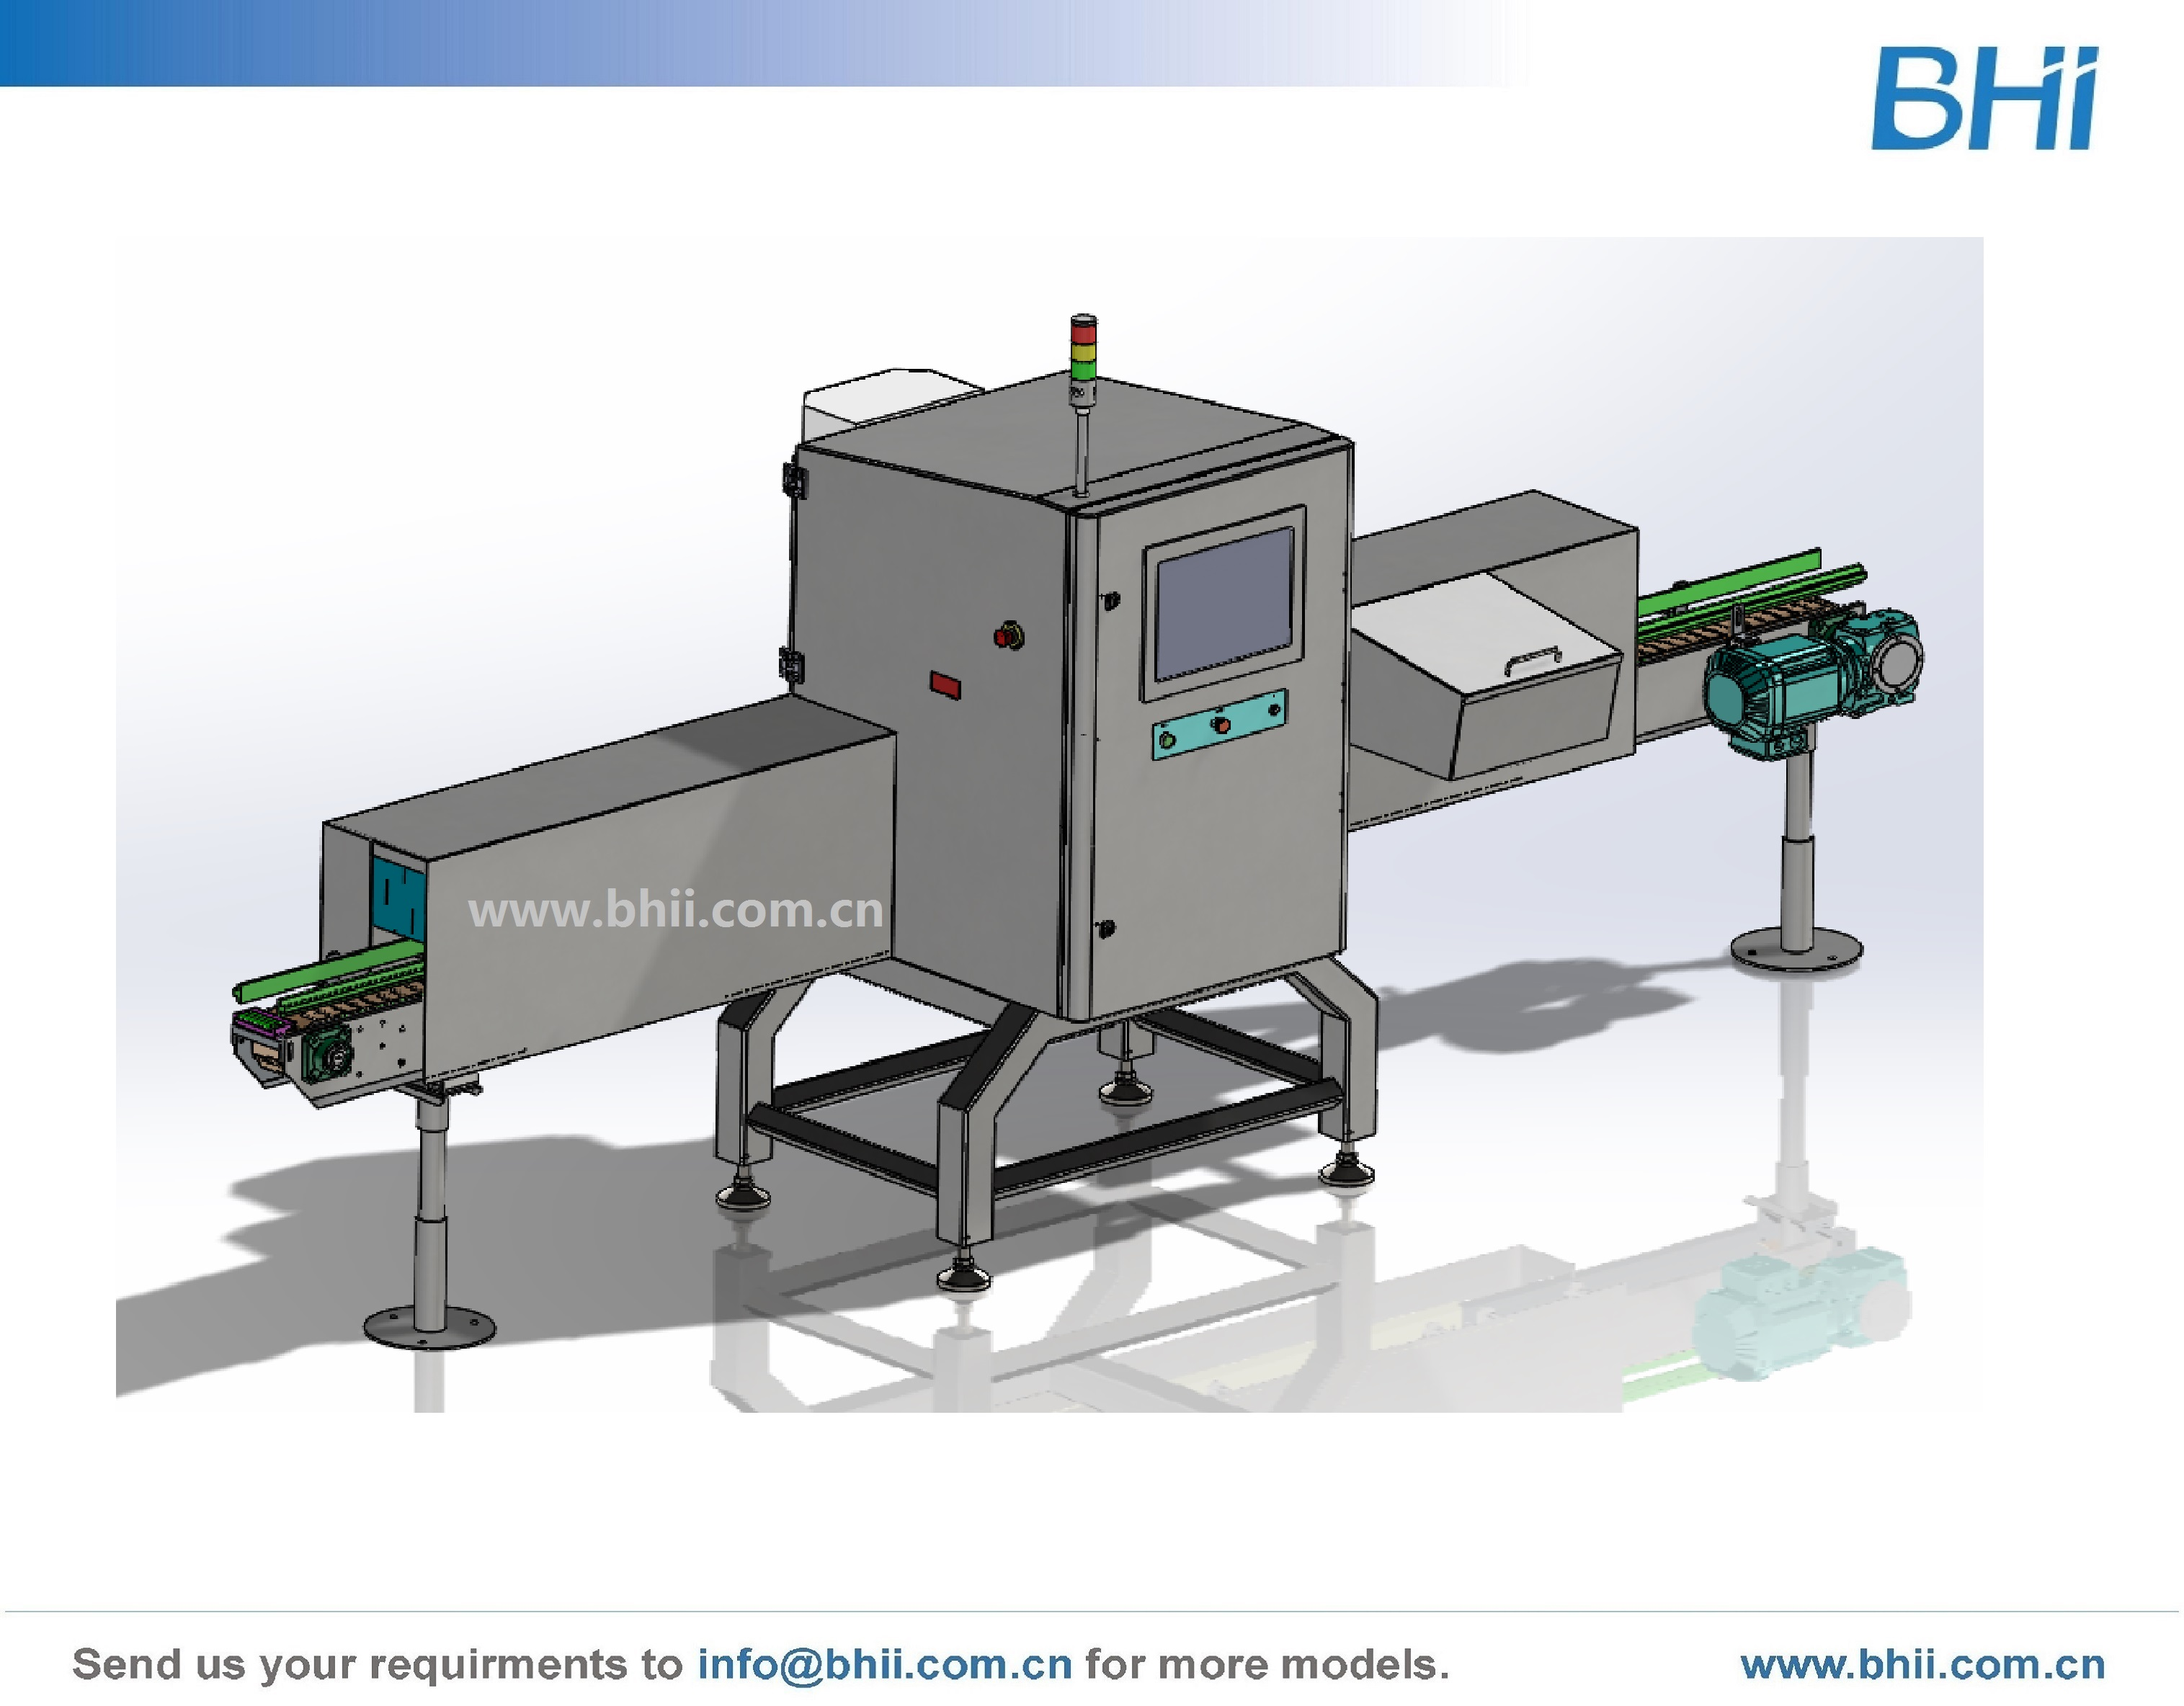 Side-Beam X-ray Inspection System